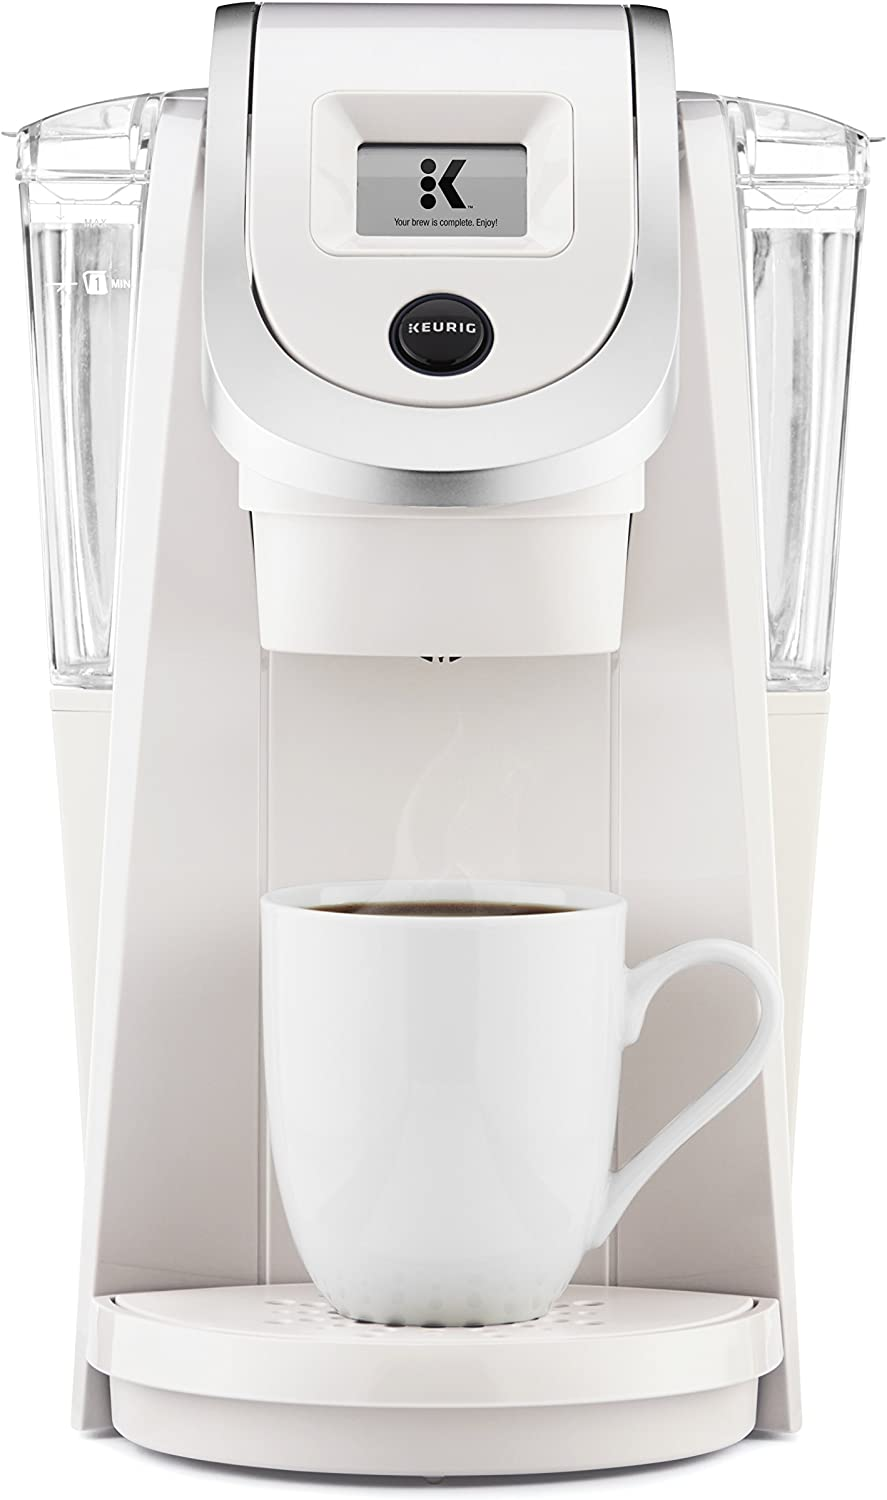 Keurig K200 Coffee Maker, Single Serve K-Cup Pod Coffee Brewer, With Strength Control, Sandy Pearl (Renewed)